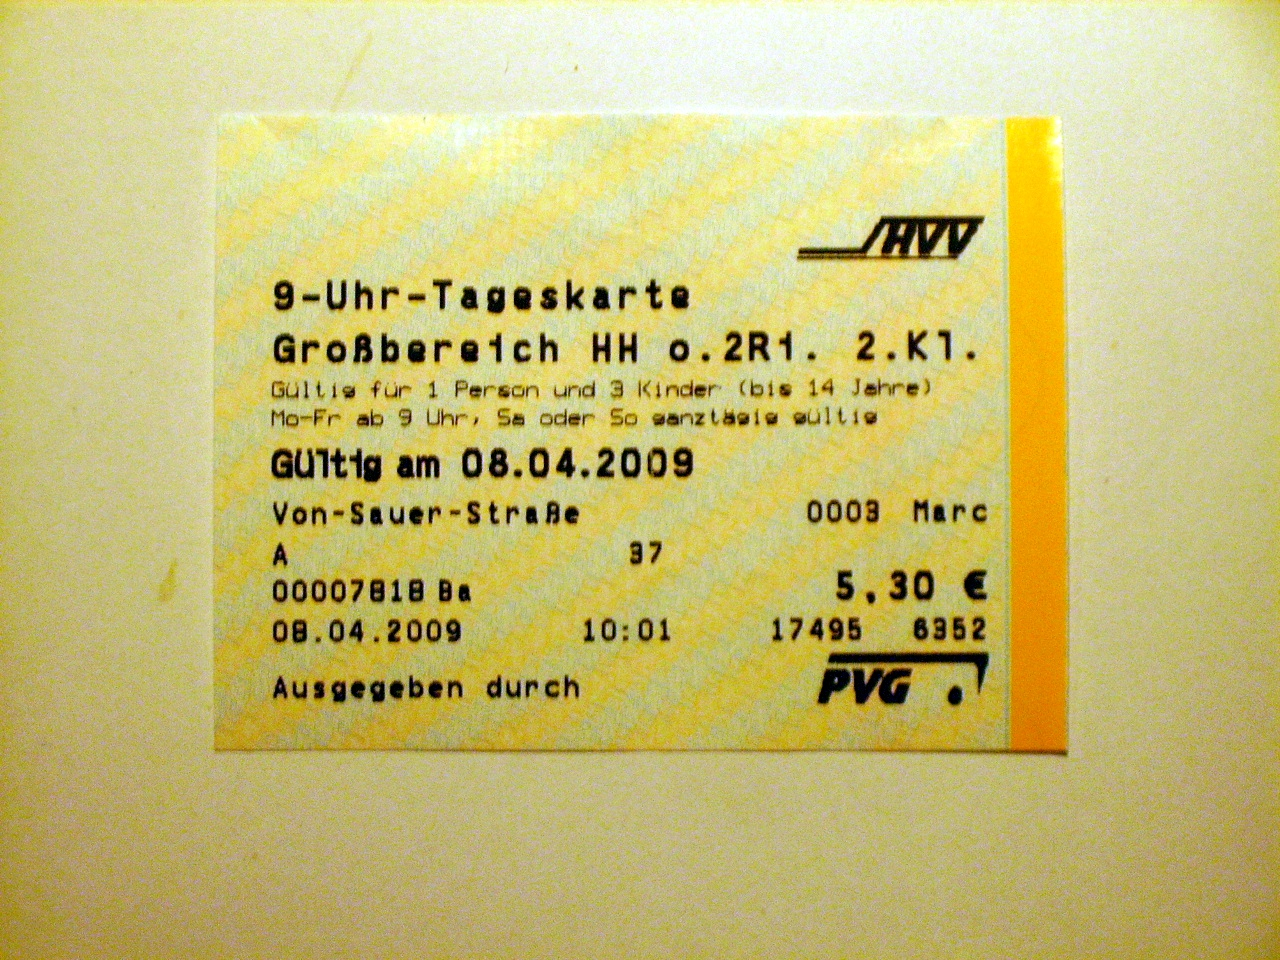 hvv ticket